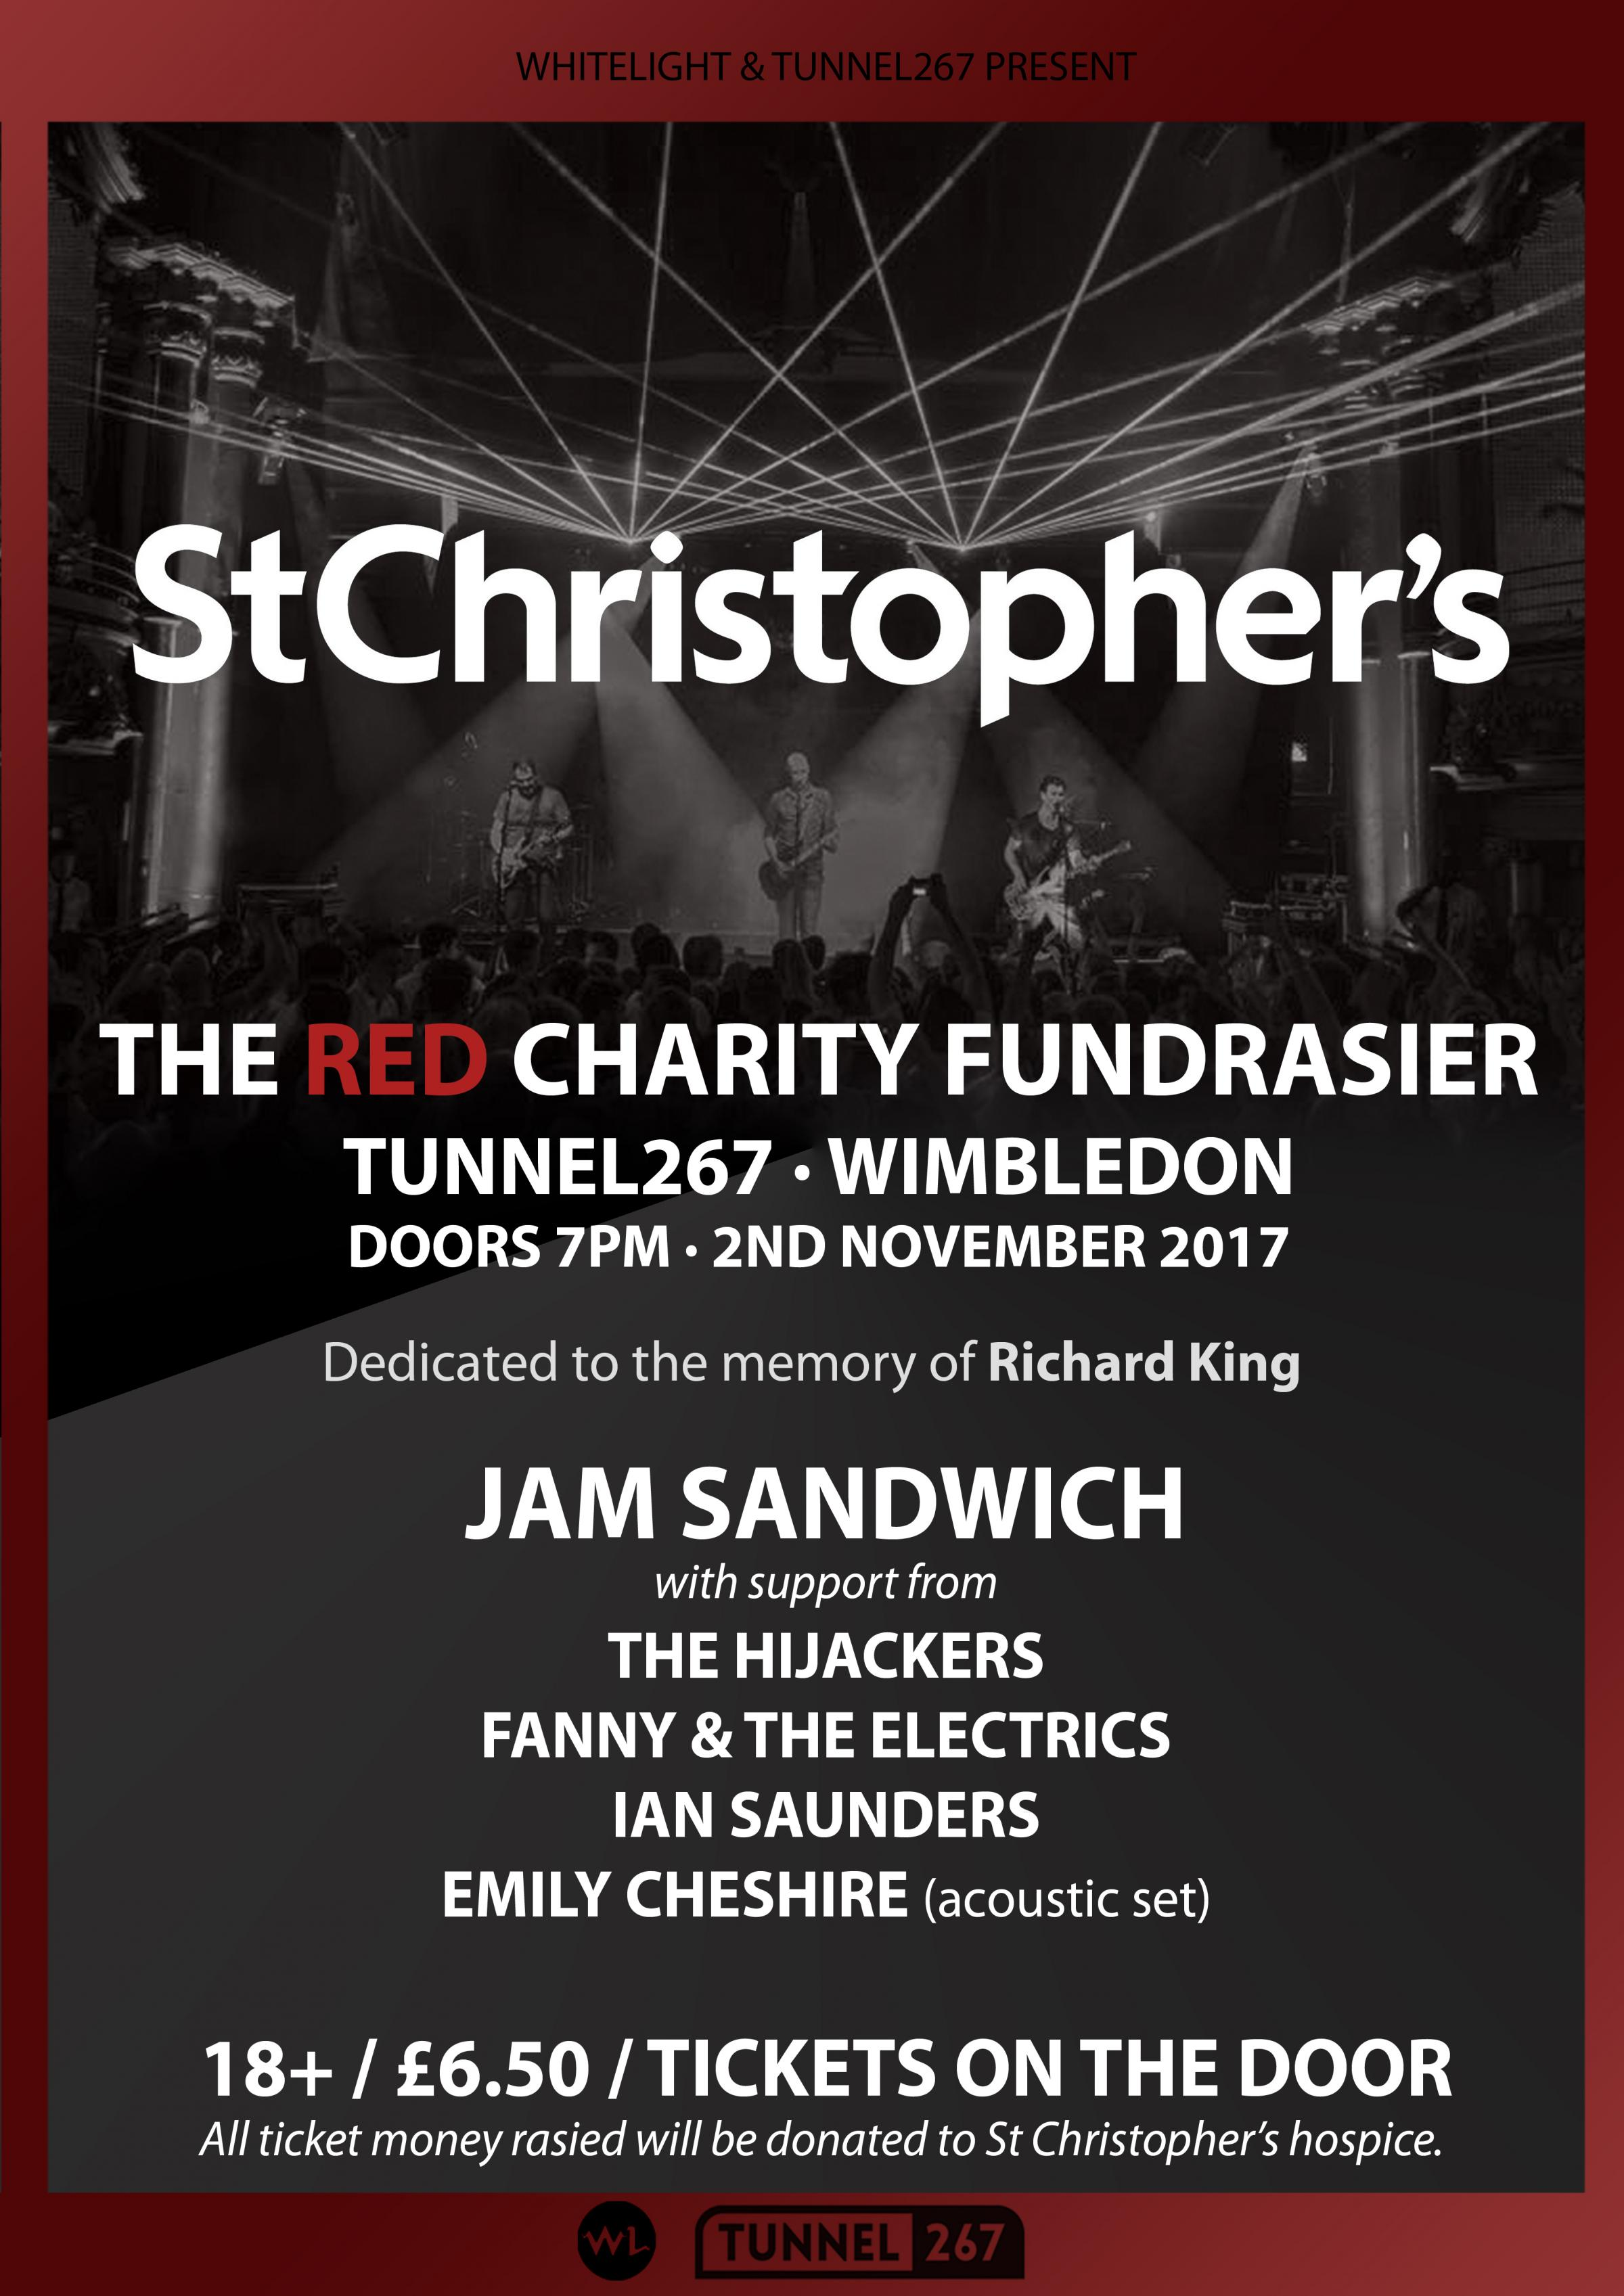 The RED charity fundraiser